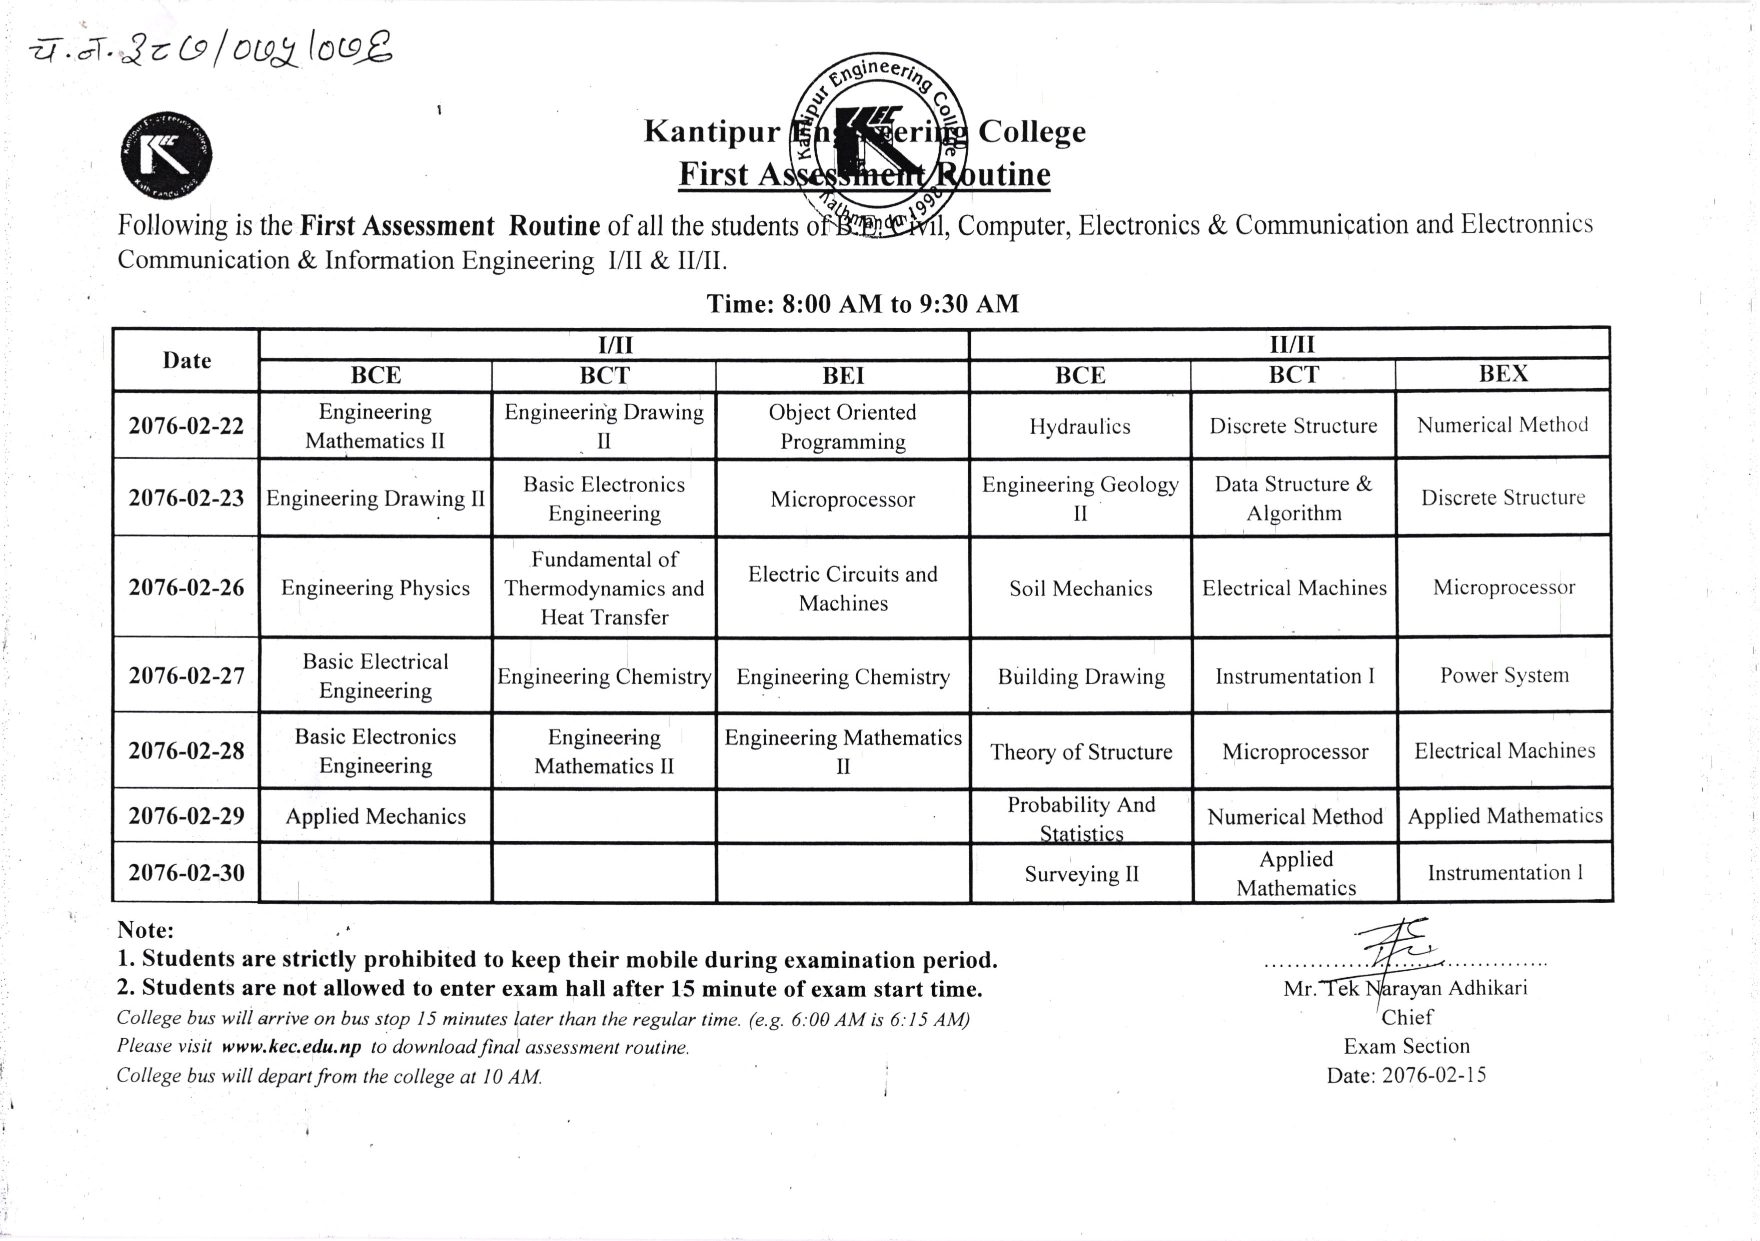 First Assessment Routine 2076 Jestha photocopy_001